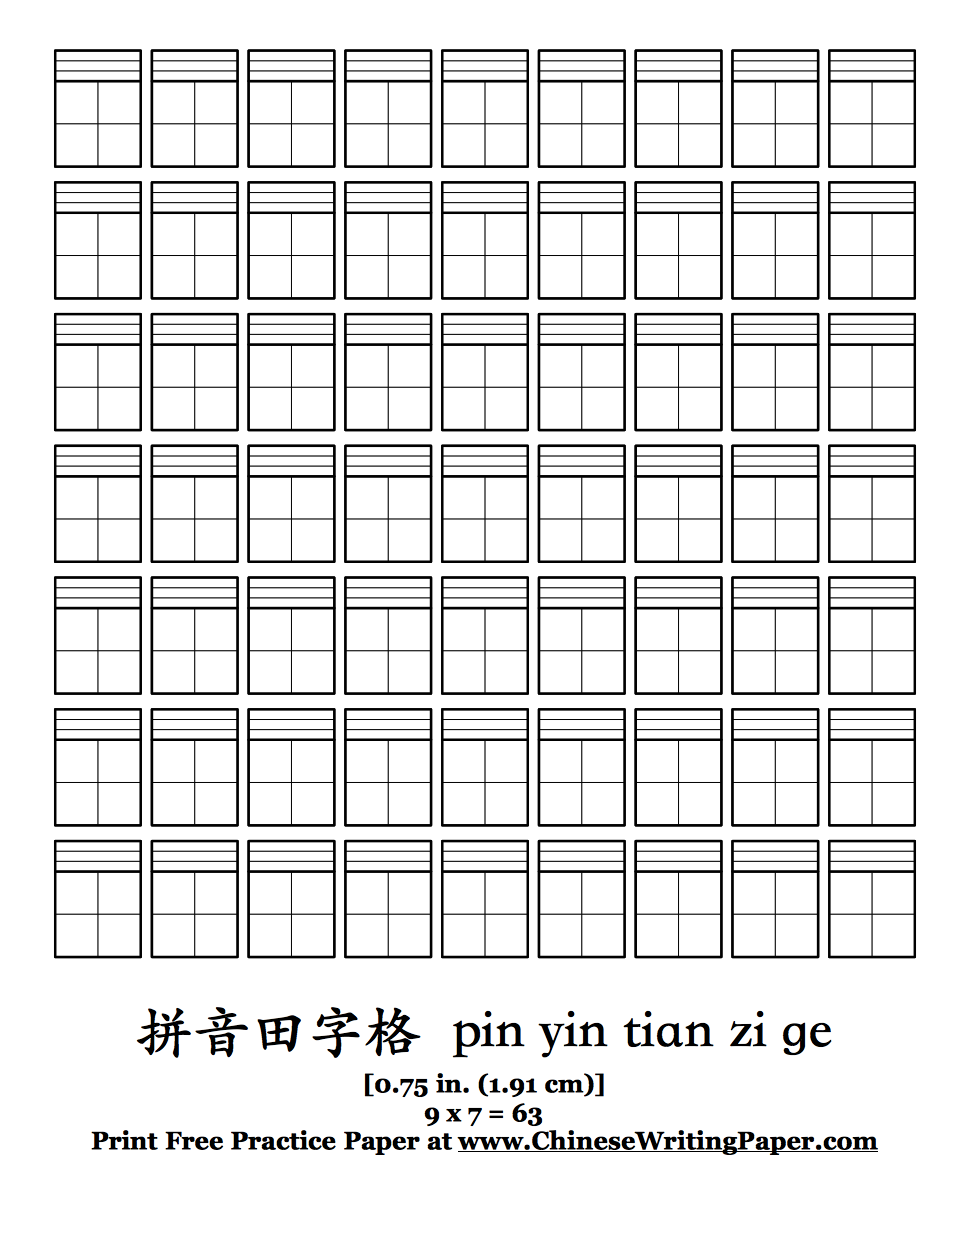 chinese writing paper, png, tianzige-pinyin-solid, 拼音田字格, 0.75 in. (1.91 cm)